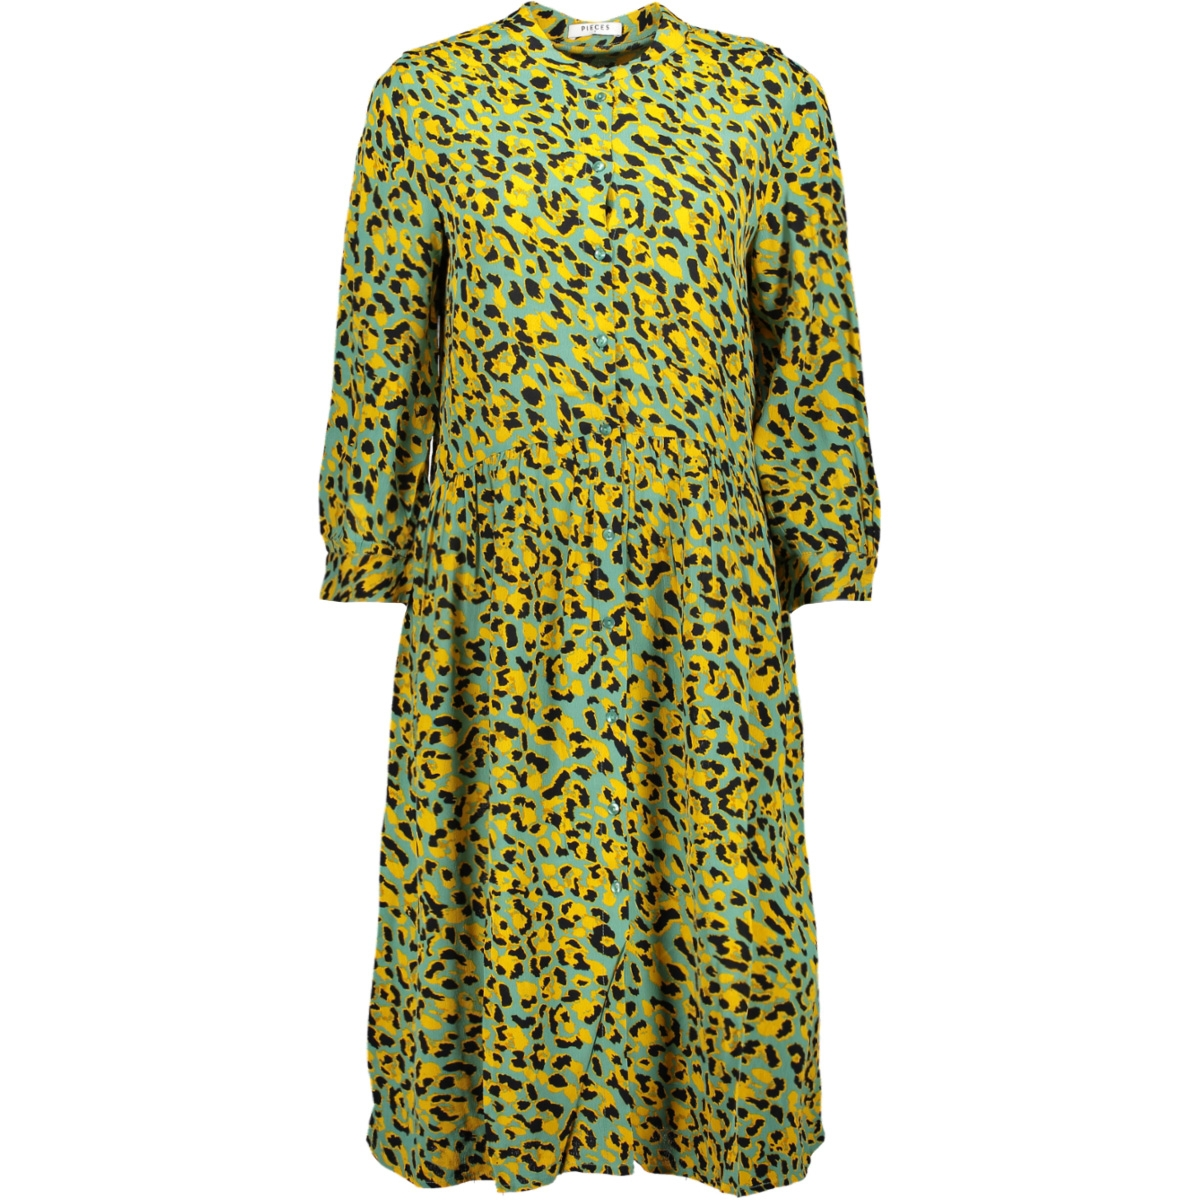 pcjexa 3/4 shirt dress if 17102342 pieces jurk feldspar/leo